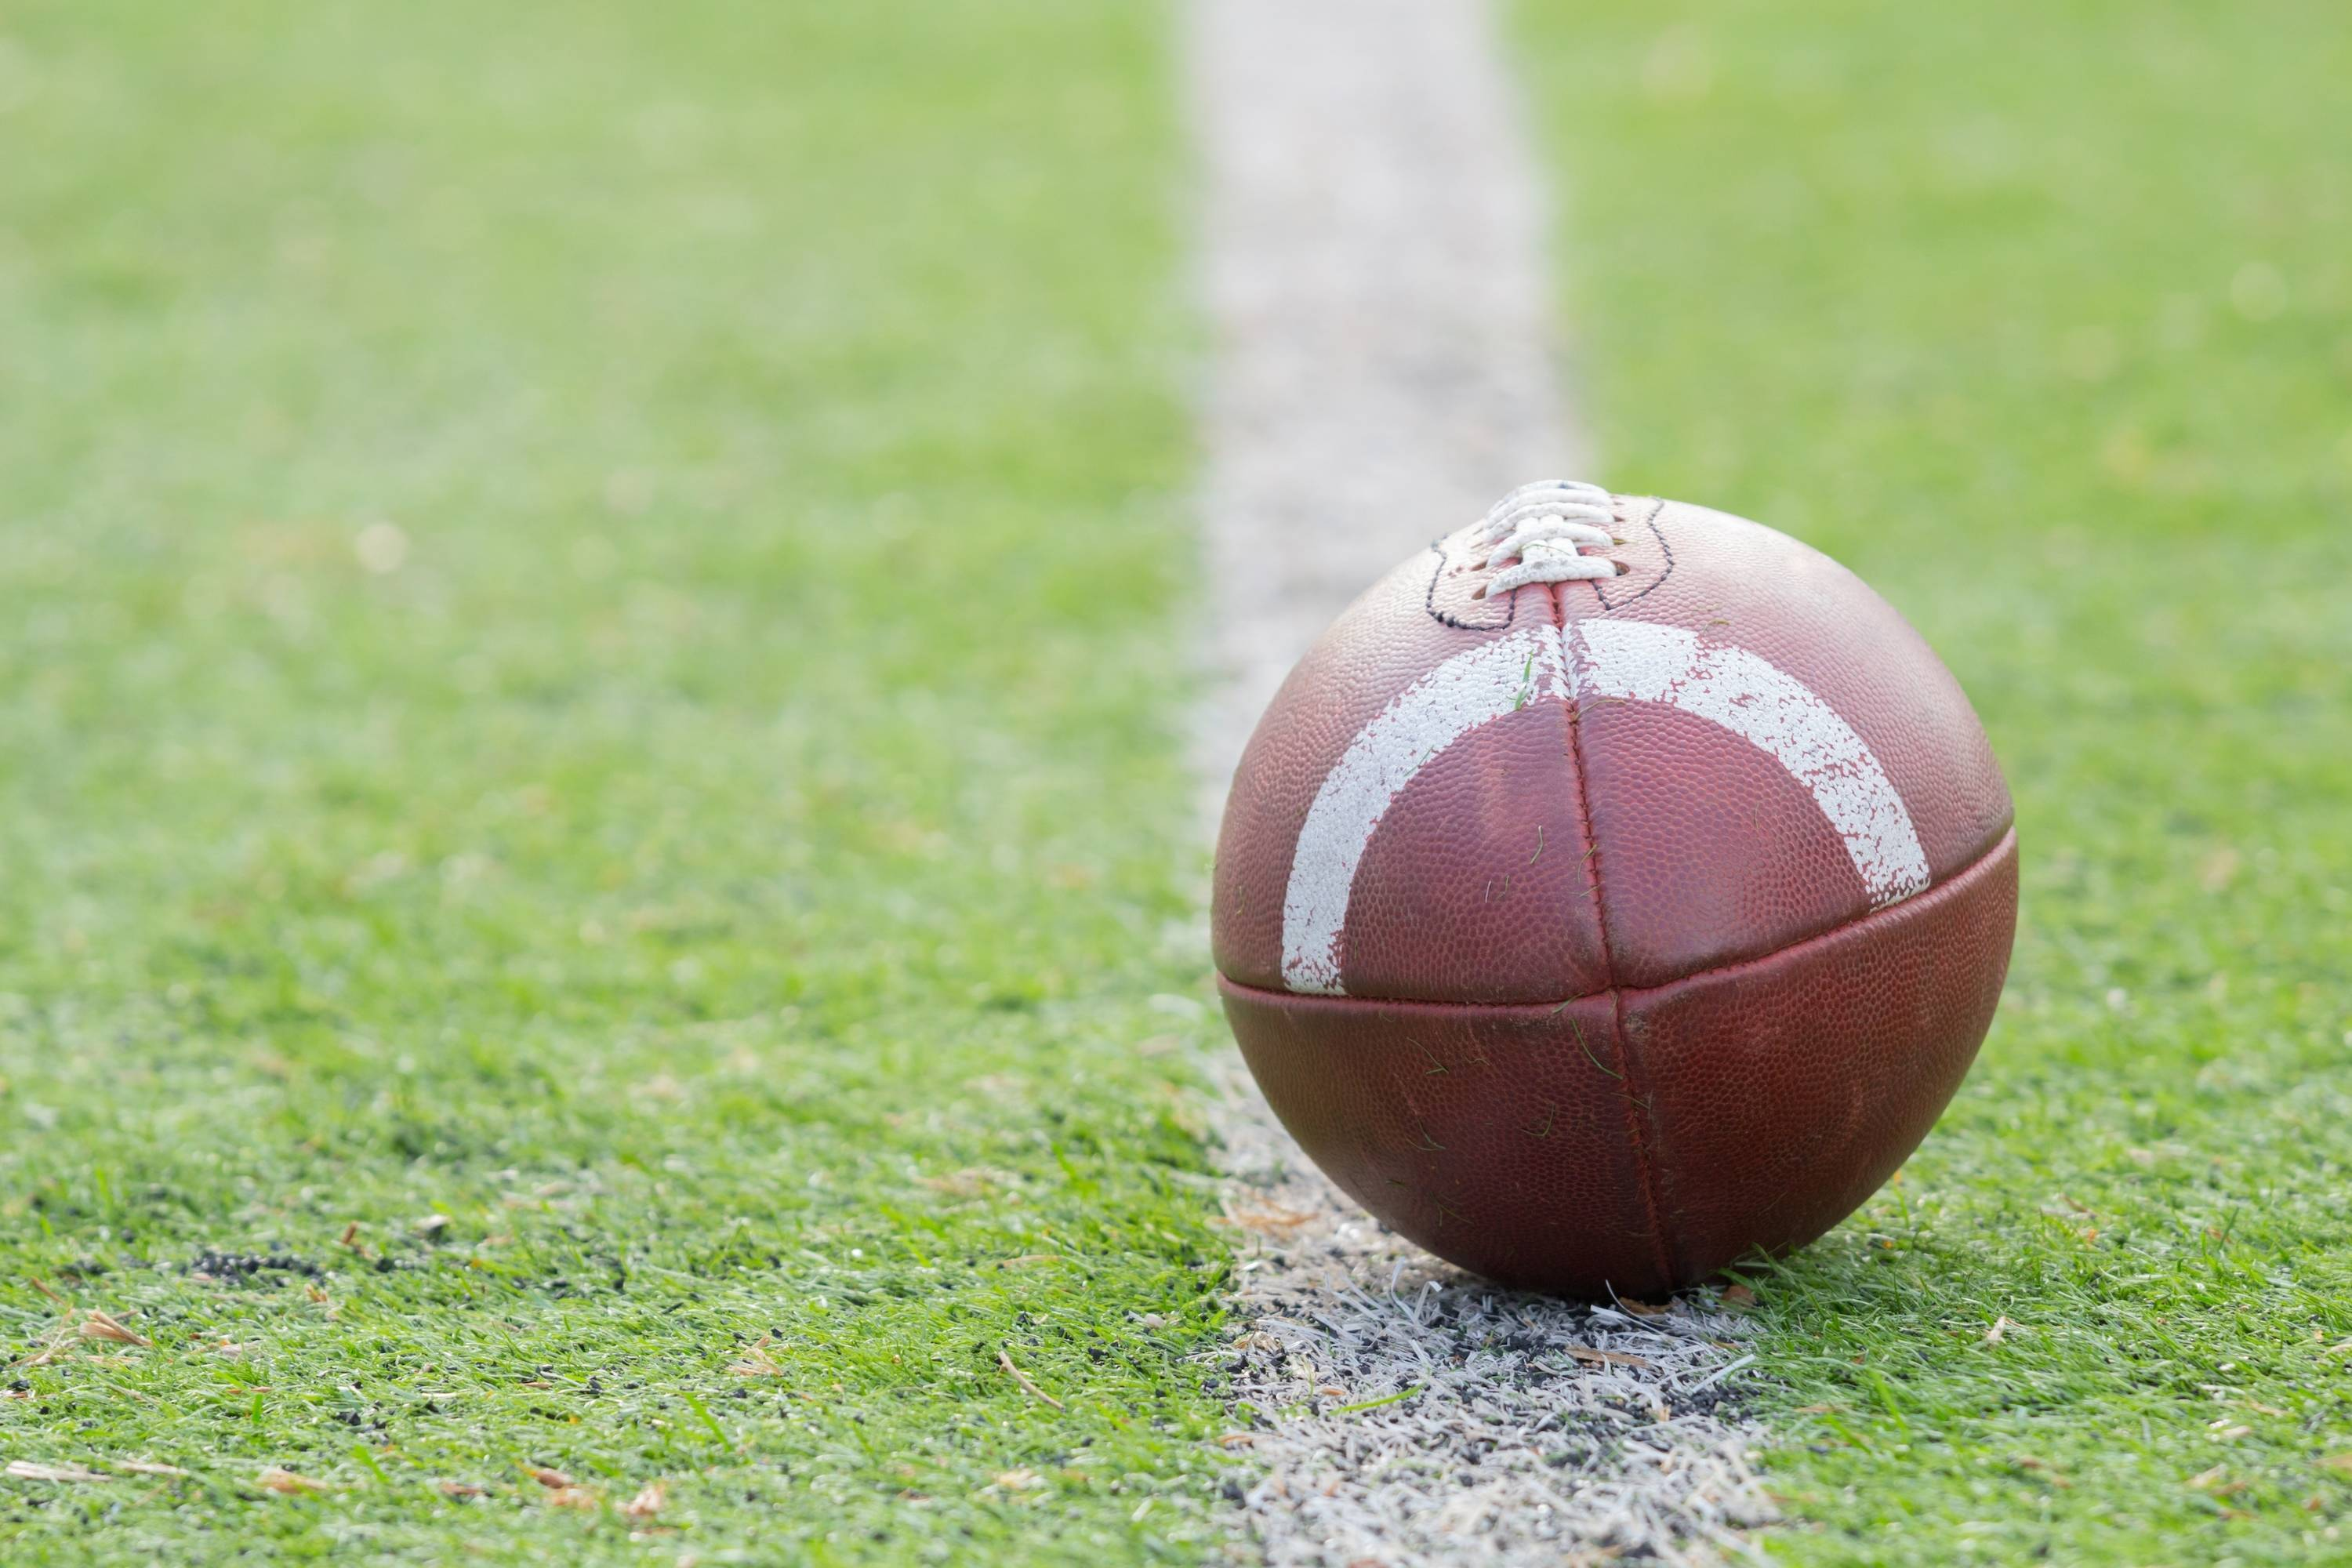 Spotswood Loses Home Opener To Dunellen On Gridiron